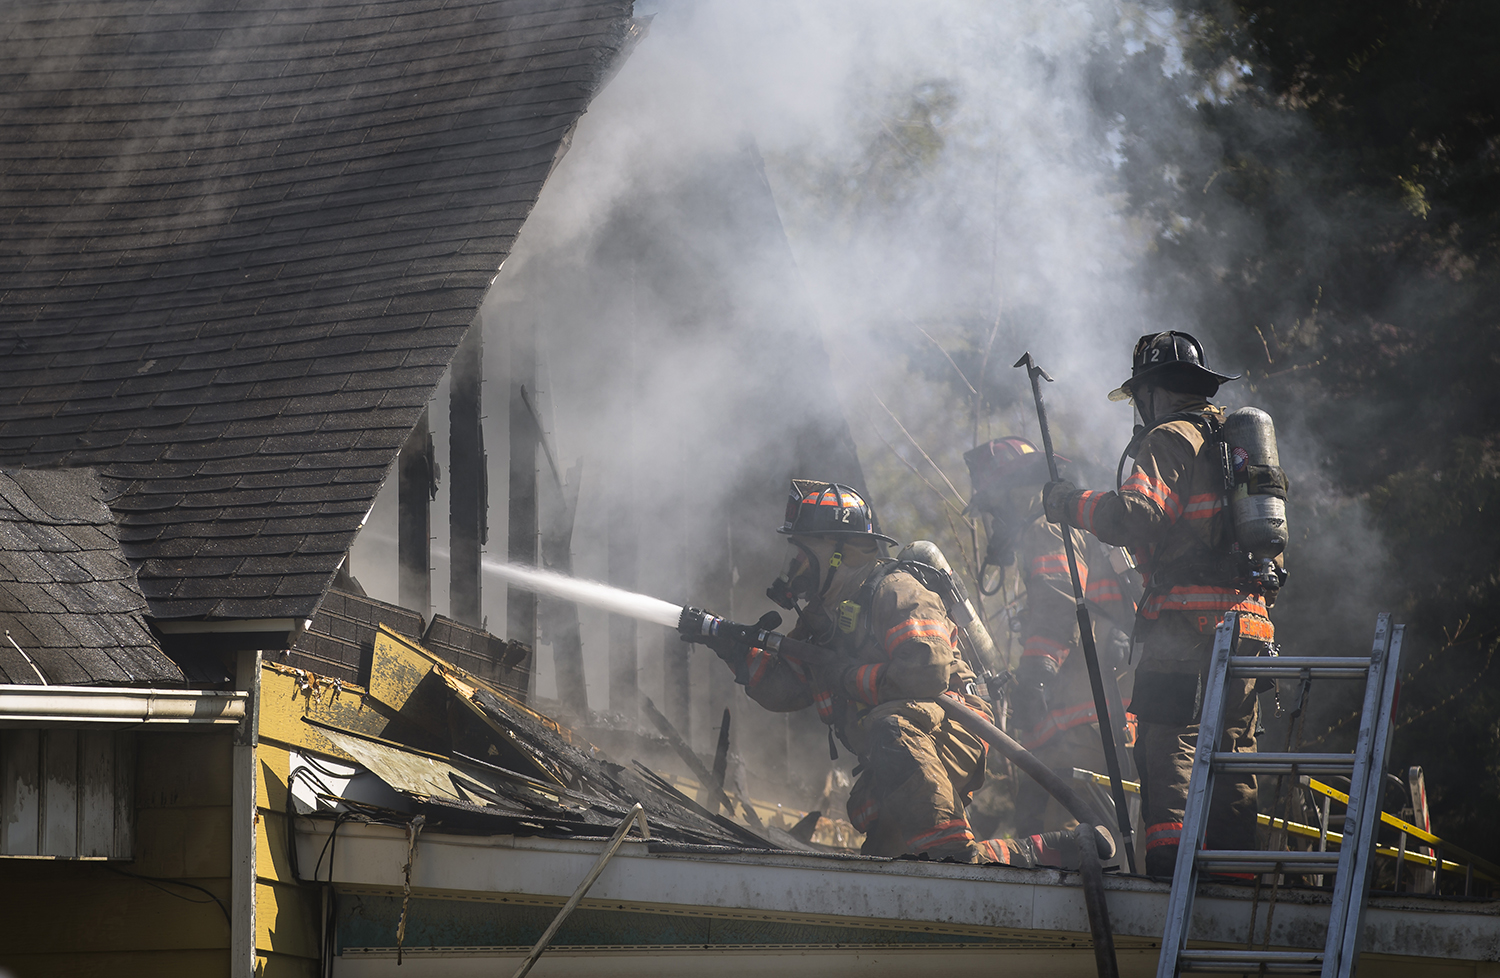 Springfield firefighters attack a structure fire in a residential home in the 2000 block of East Kansas Street, Monday, April 15, 2019, in Springfield, Ill. The home was thought to be vacant and was heavily damaged in the fire. [Justin L. Fowler/The State Journal-Register]